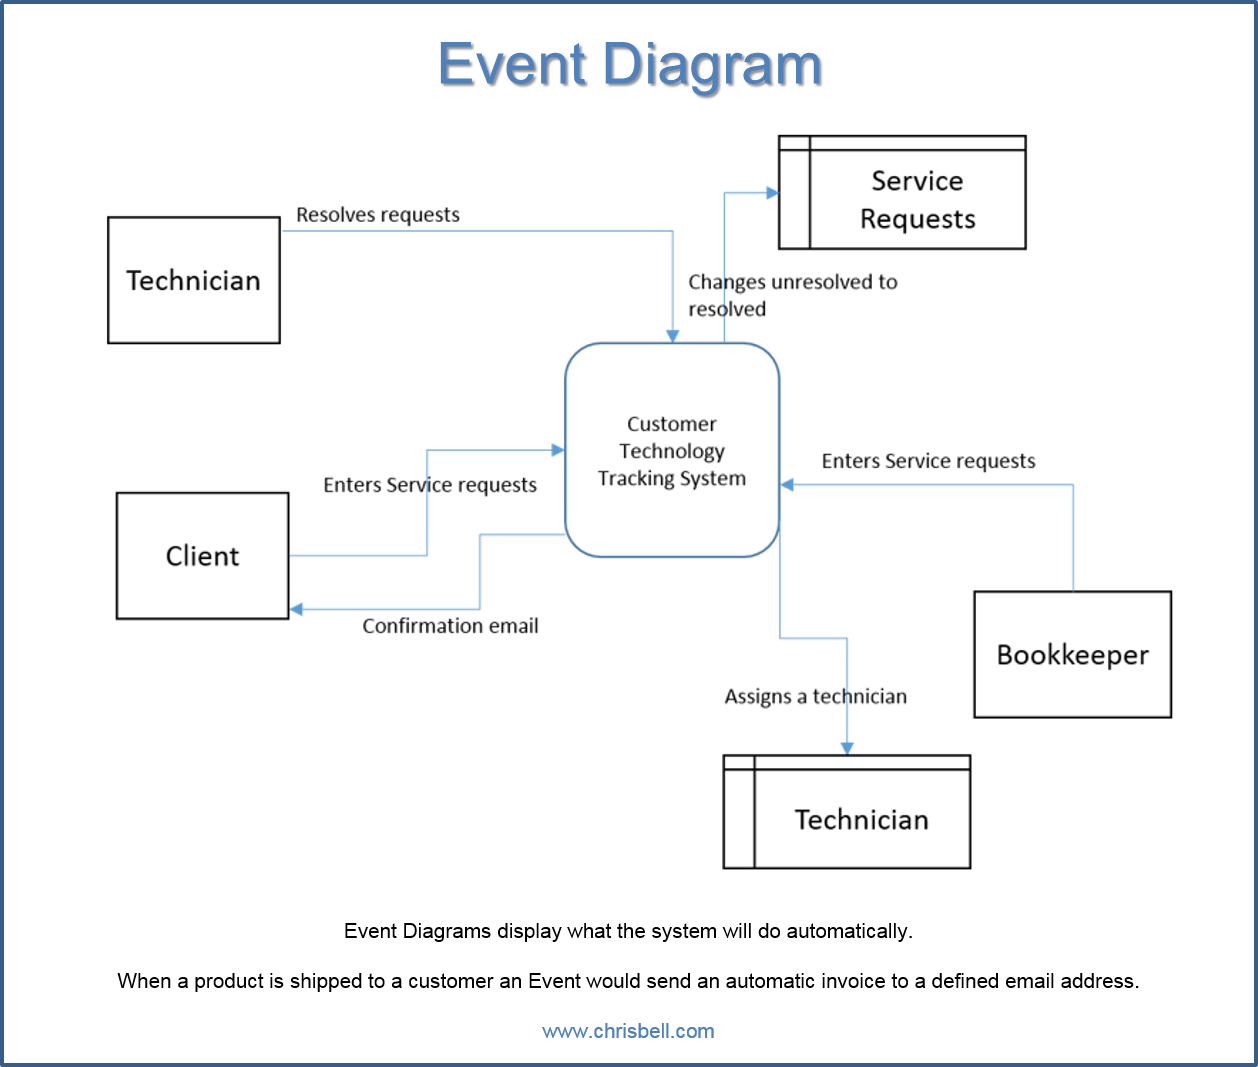 Event Diagram